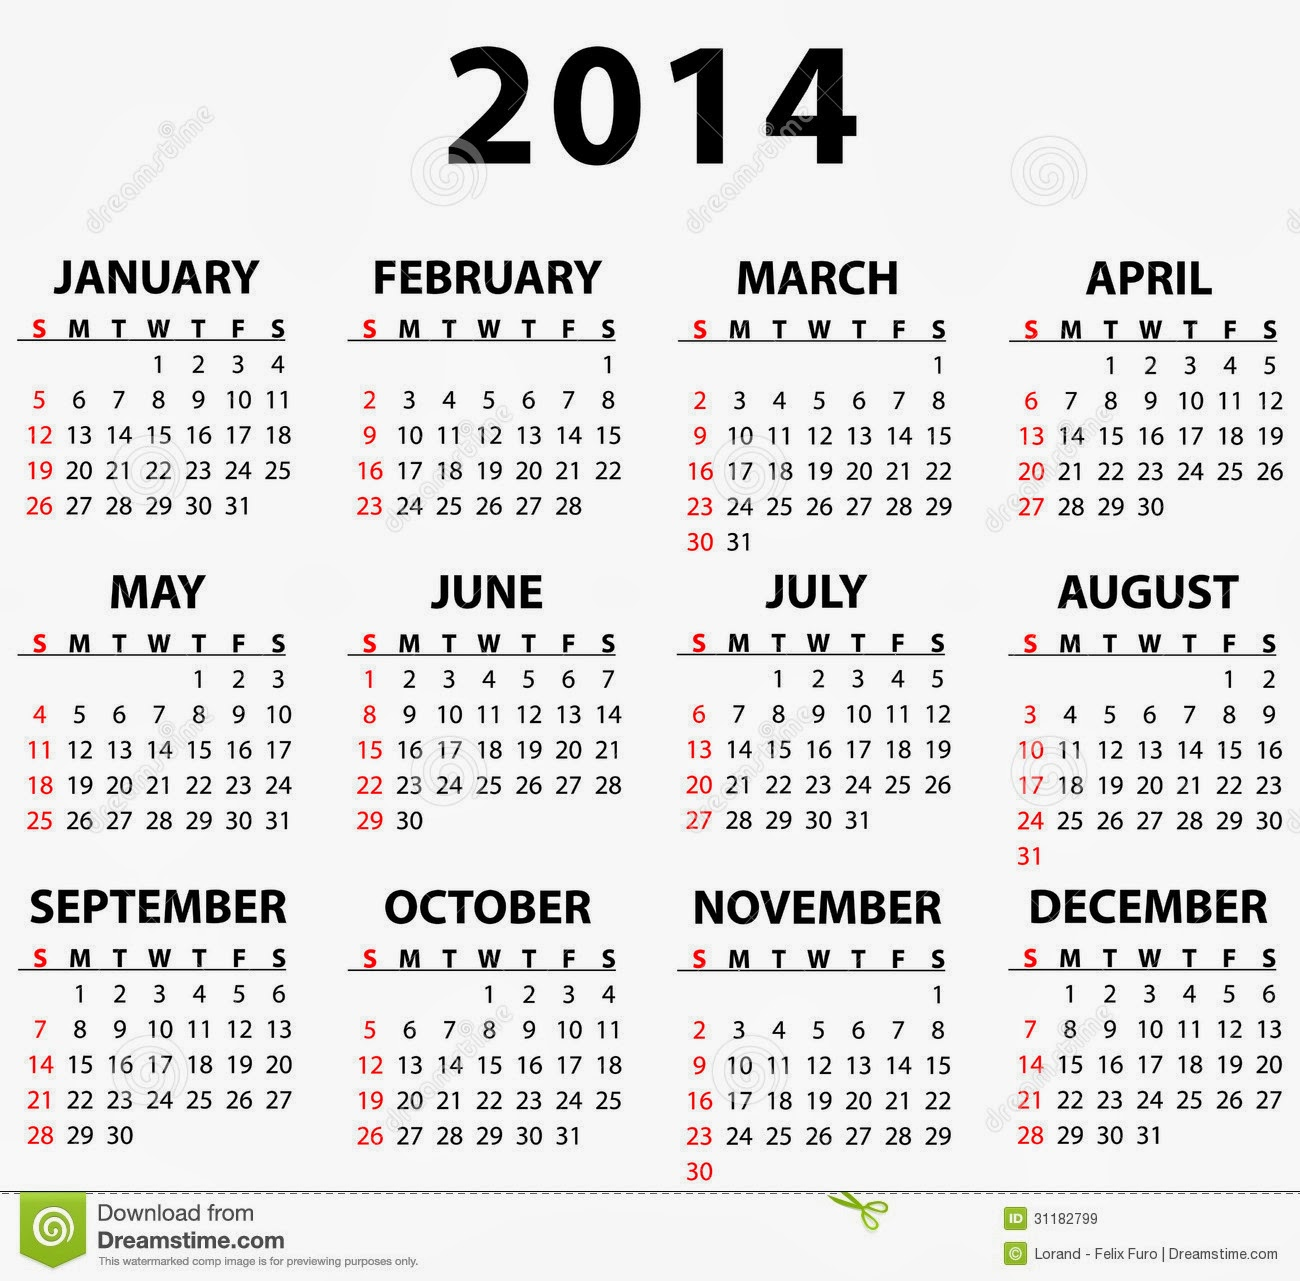 Search results for full year calendar 2014 calendar 2015 for 2014 full year calendar template